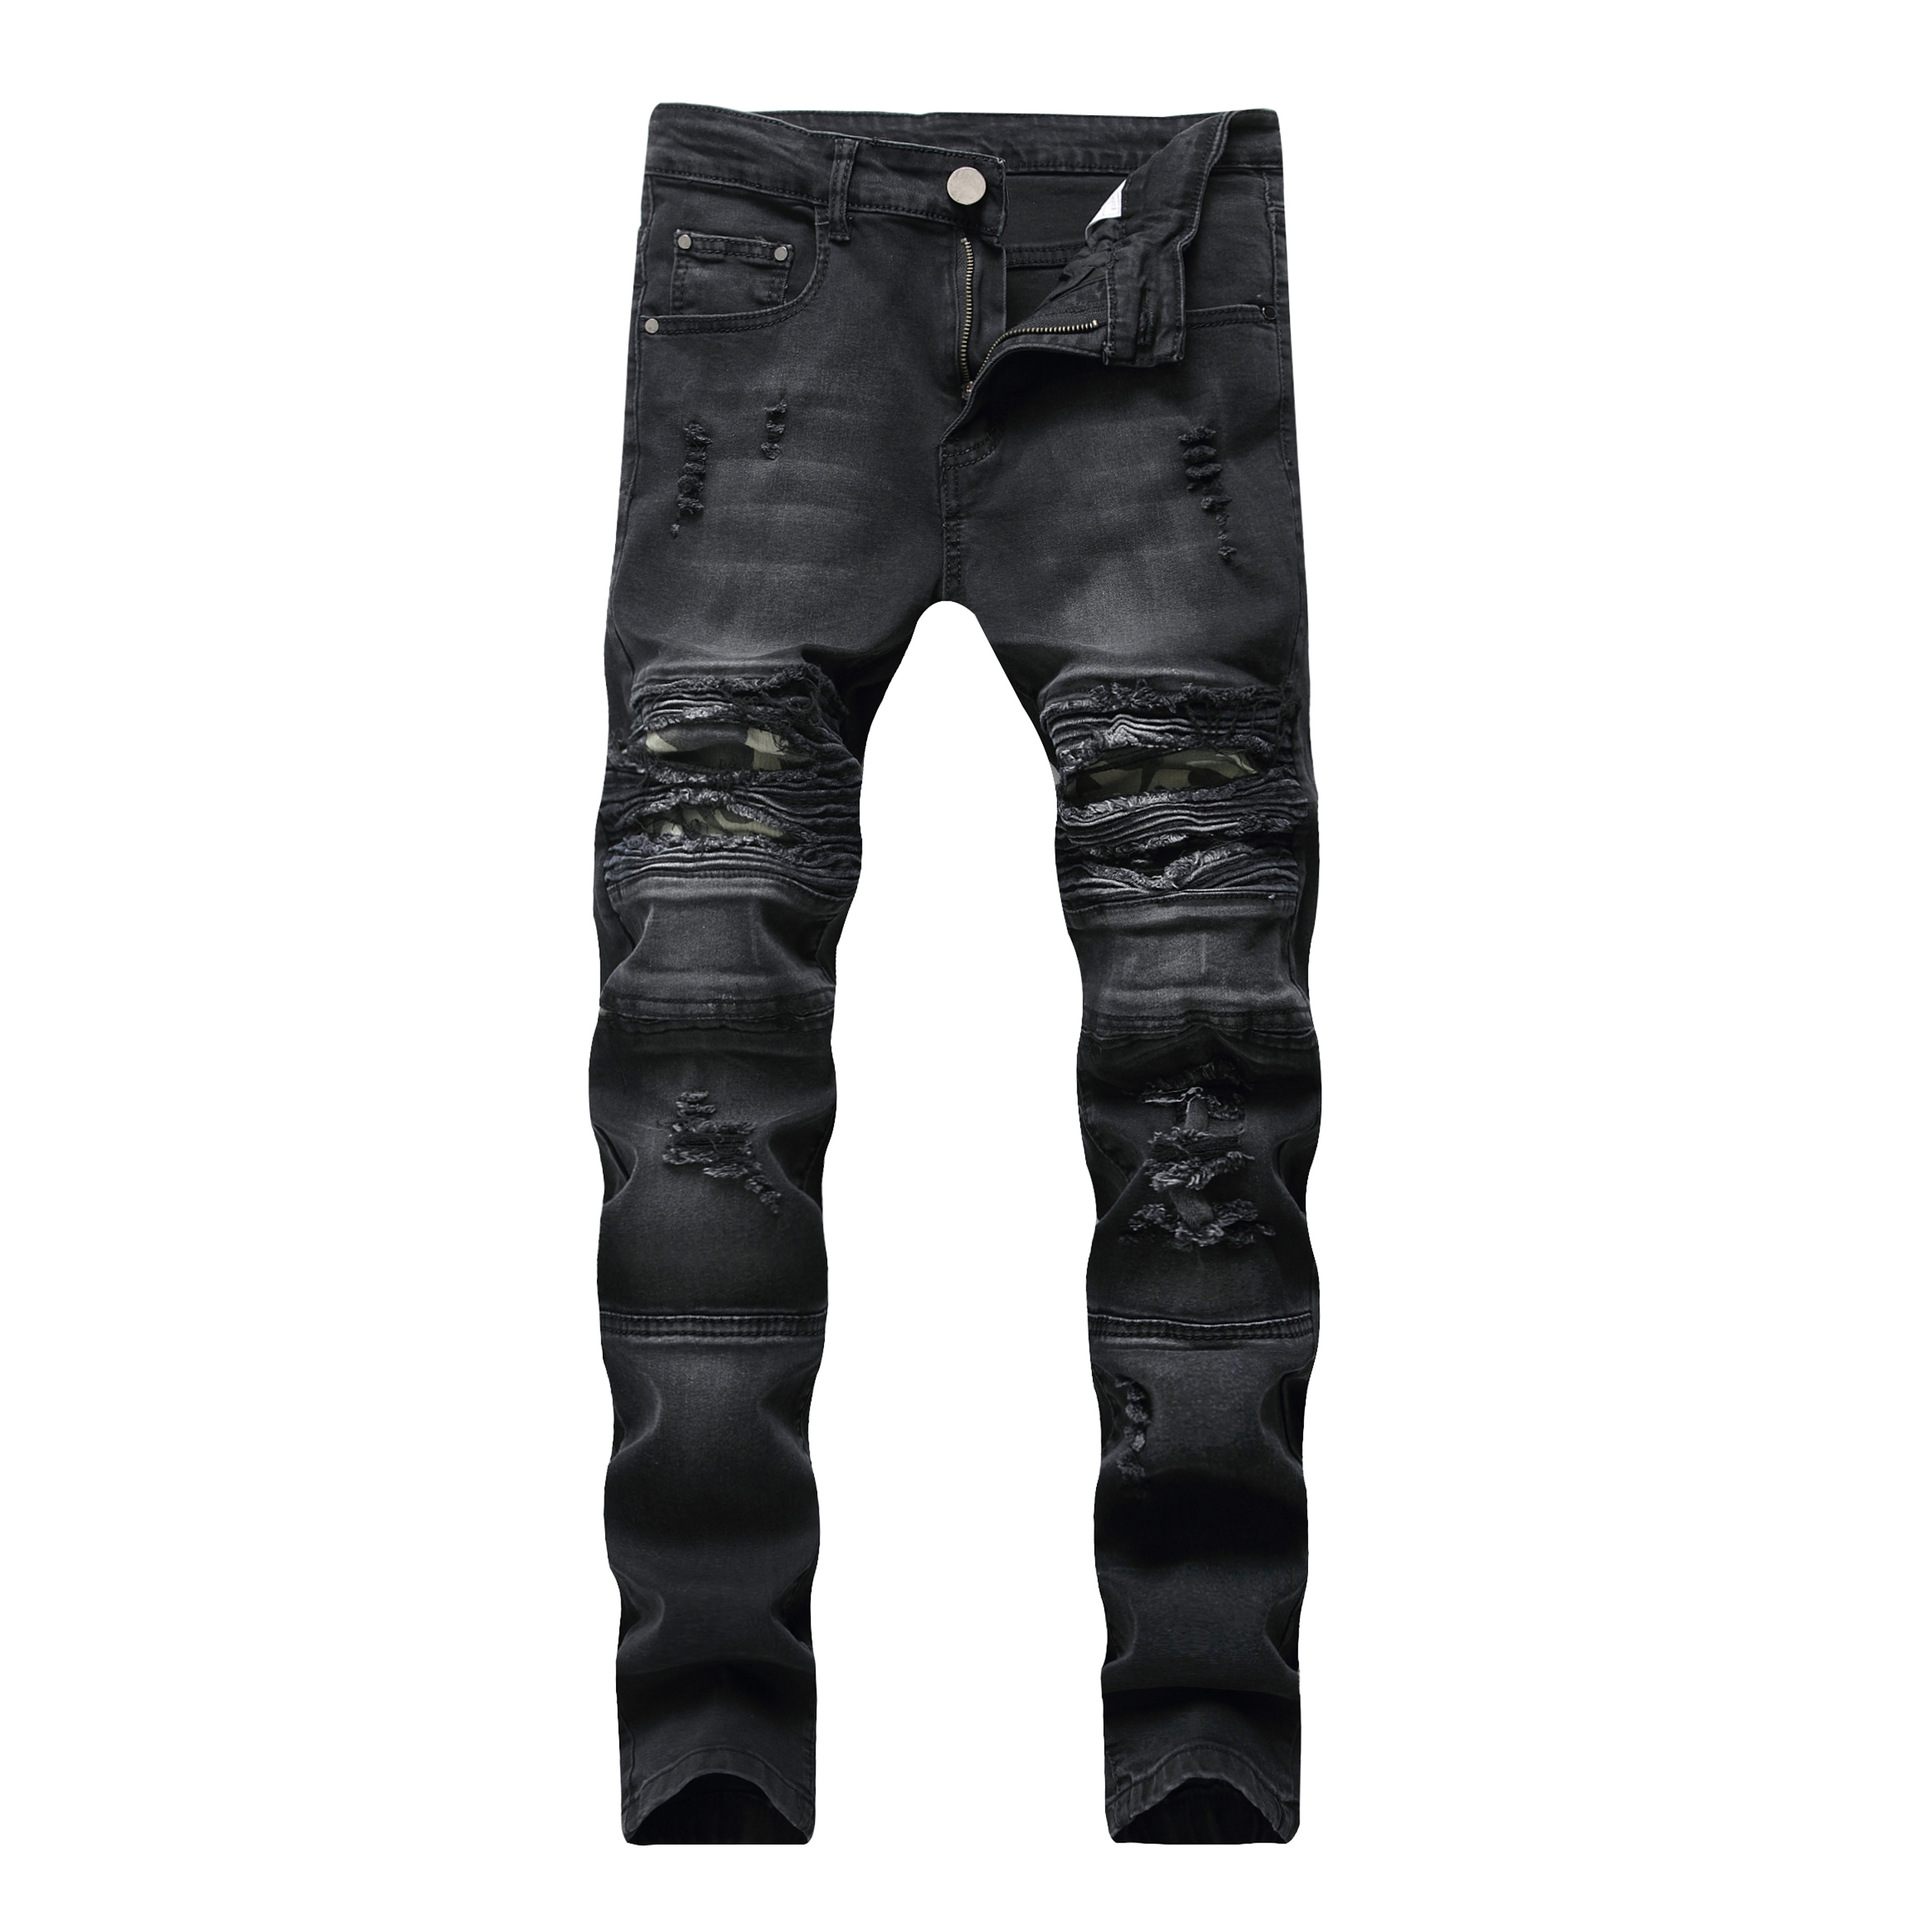 Black/Blue Mens Hole Motorcycle Pants Slim Fit High Quality Streetwears Stretchy Male Winter Autumn Jeans Pants 28/42 New D472